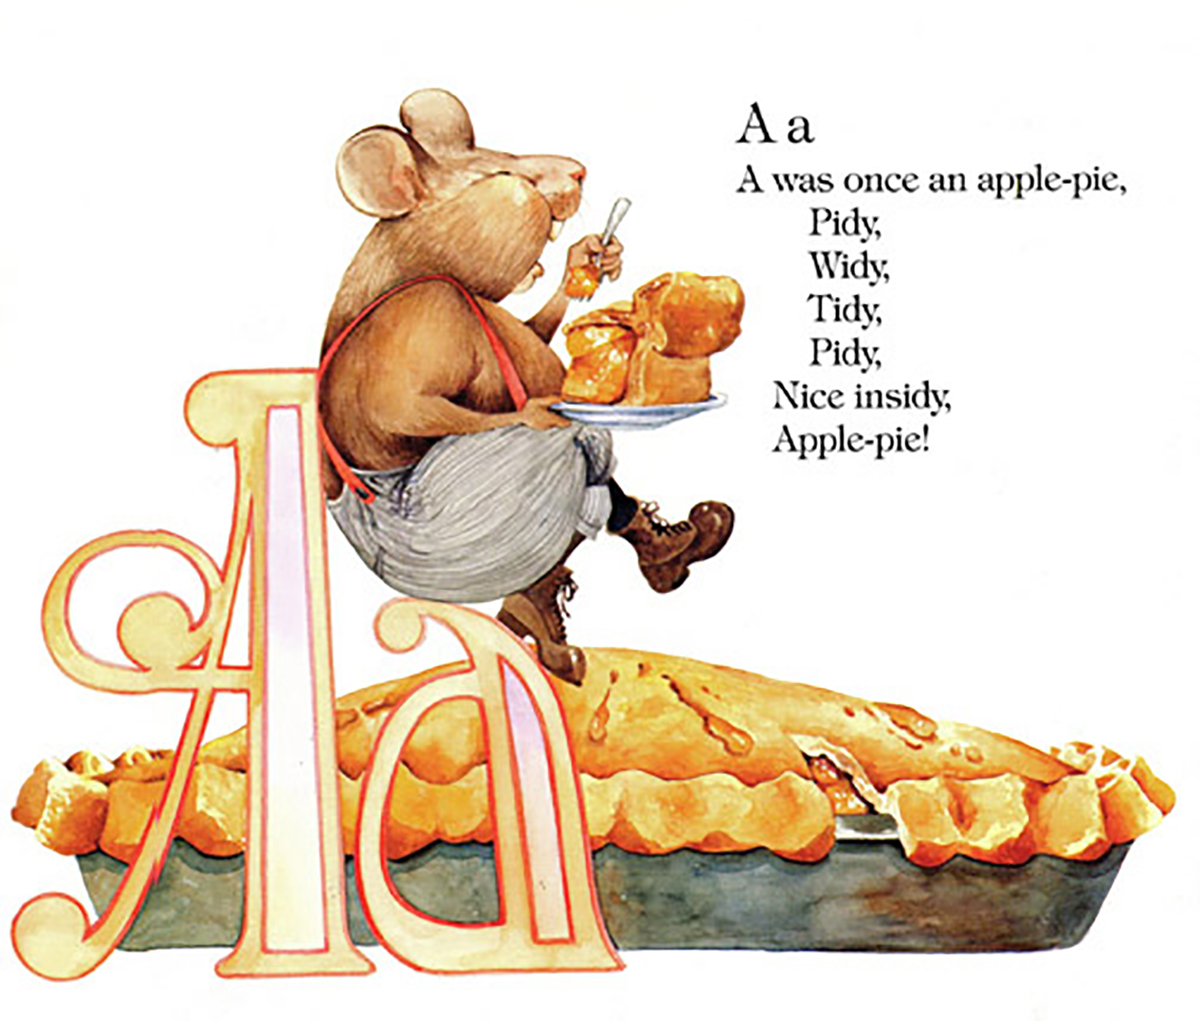 The Letter A from Edward Lear's Alphabet. Edward Lear wrote all the poems to help kids learn to read.